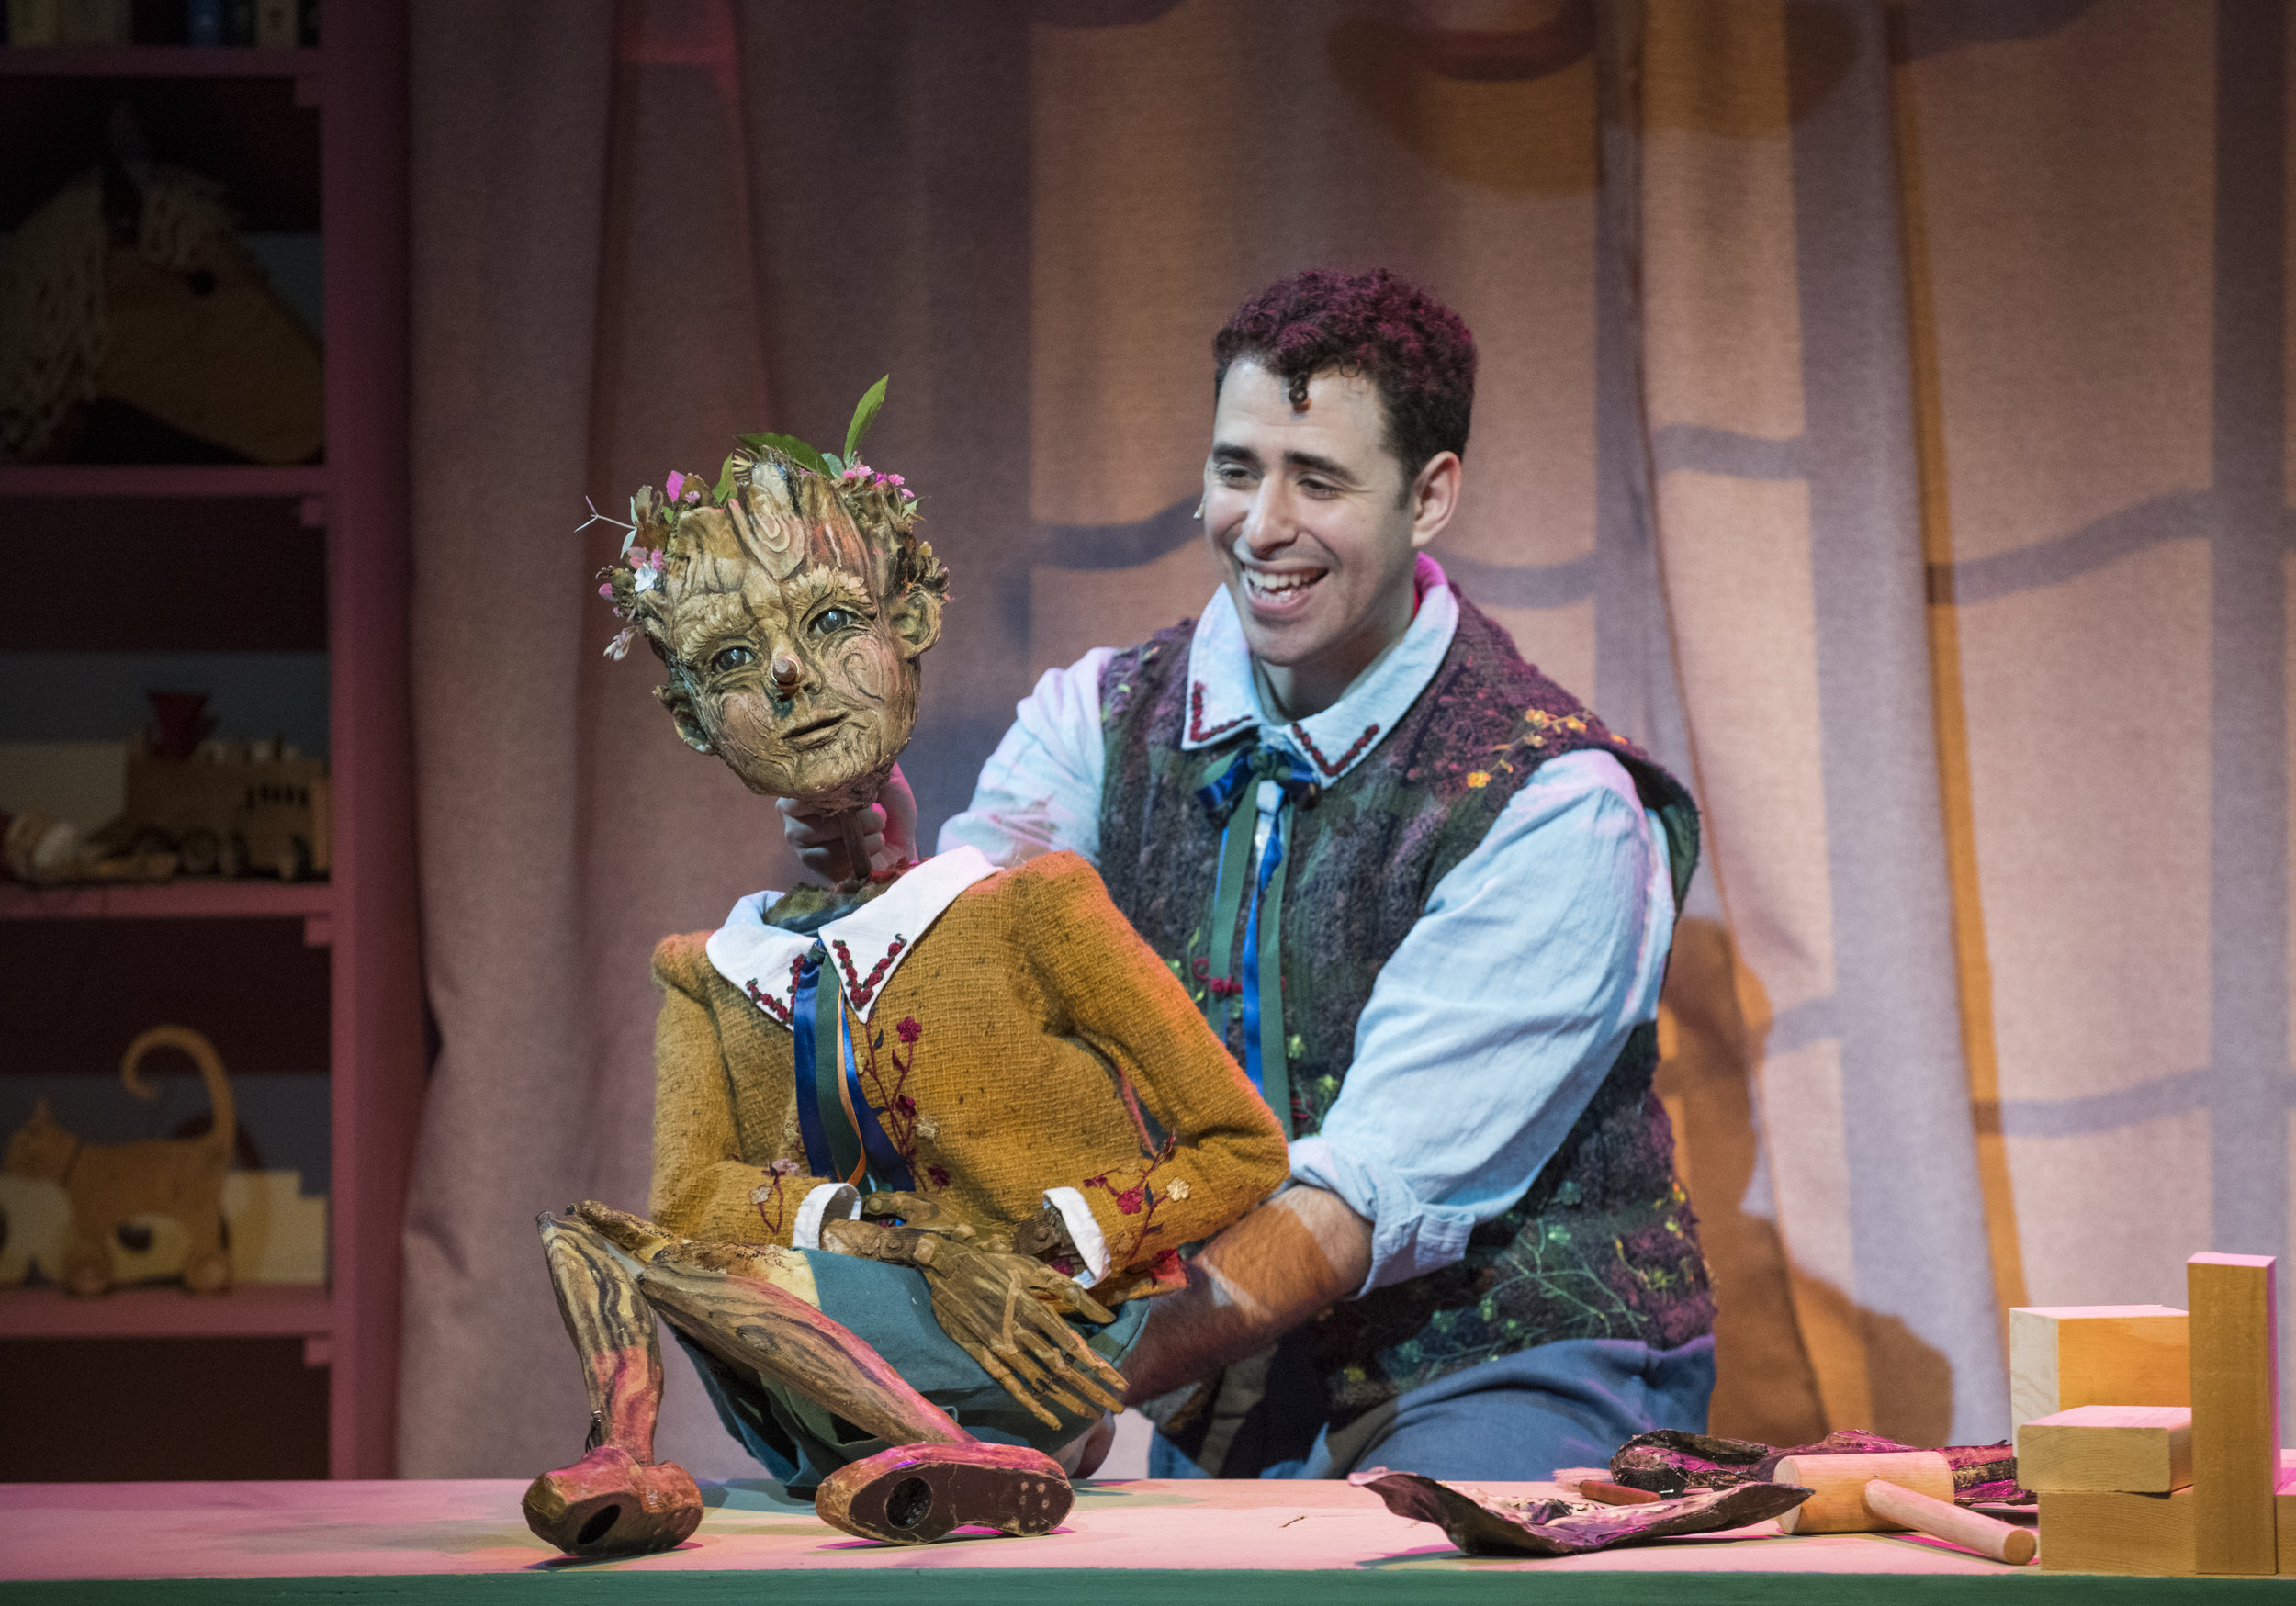 Pinocchio comes to life in Geppetto's workshop